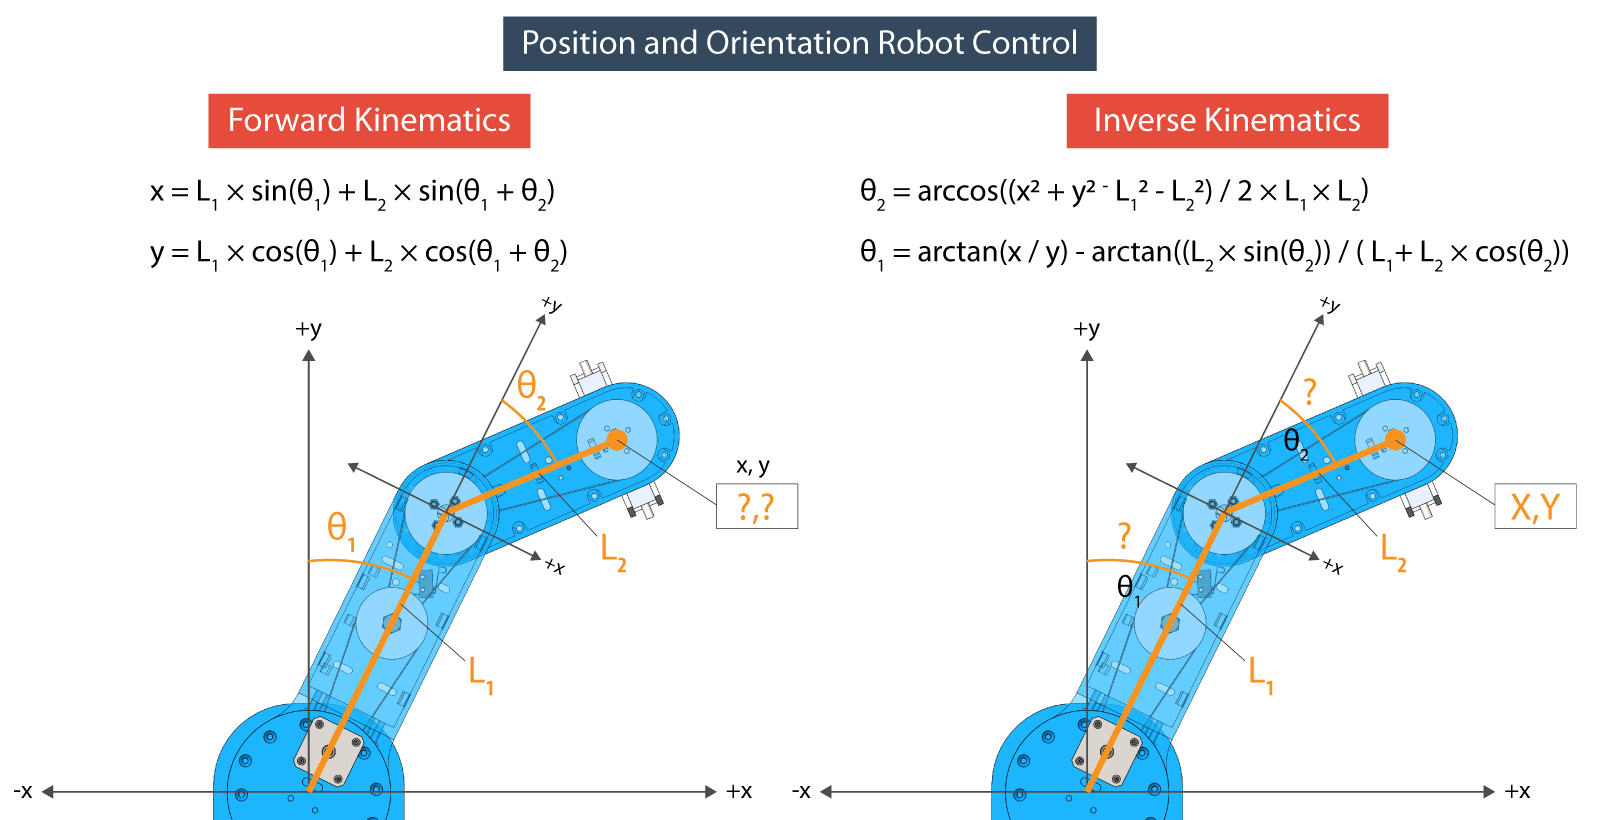 Equations for Forward and Inverse Kinematics for robots